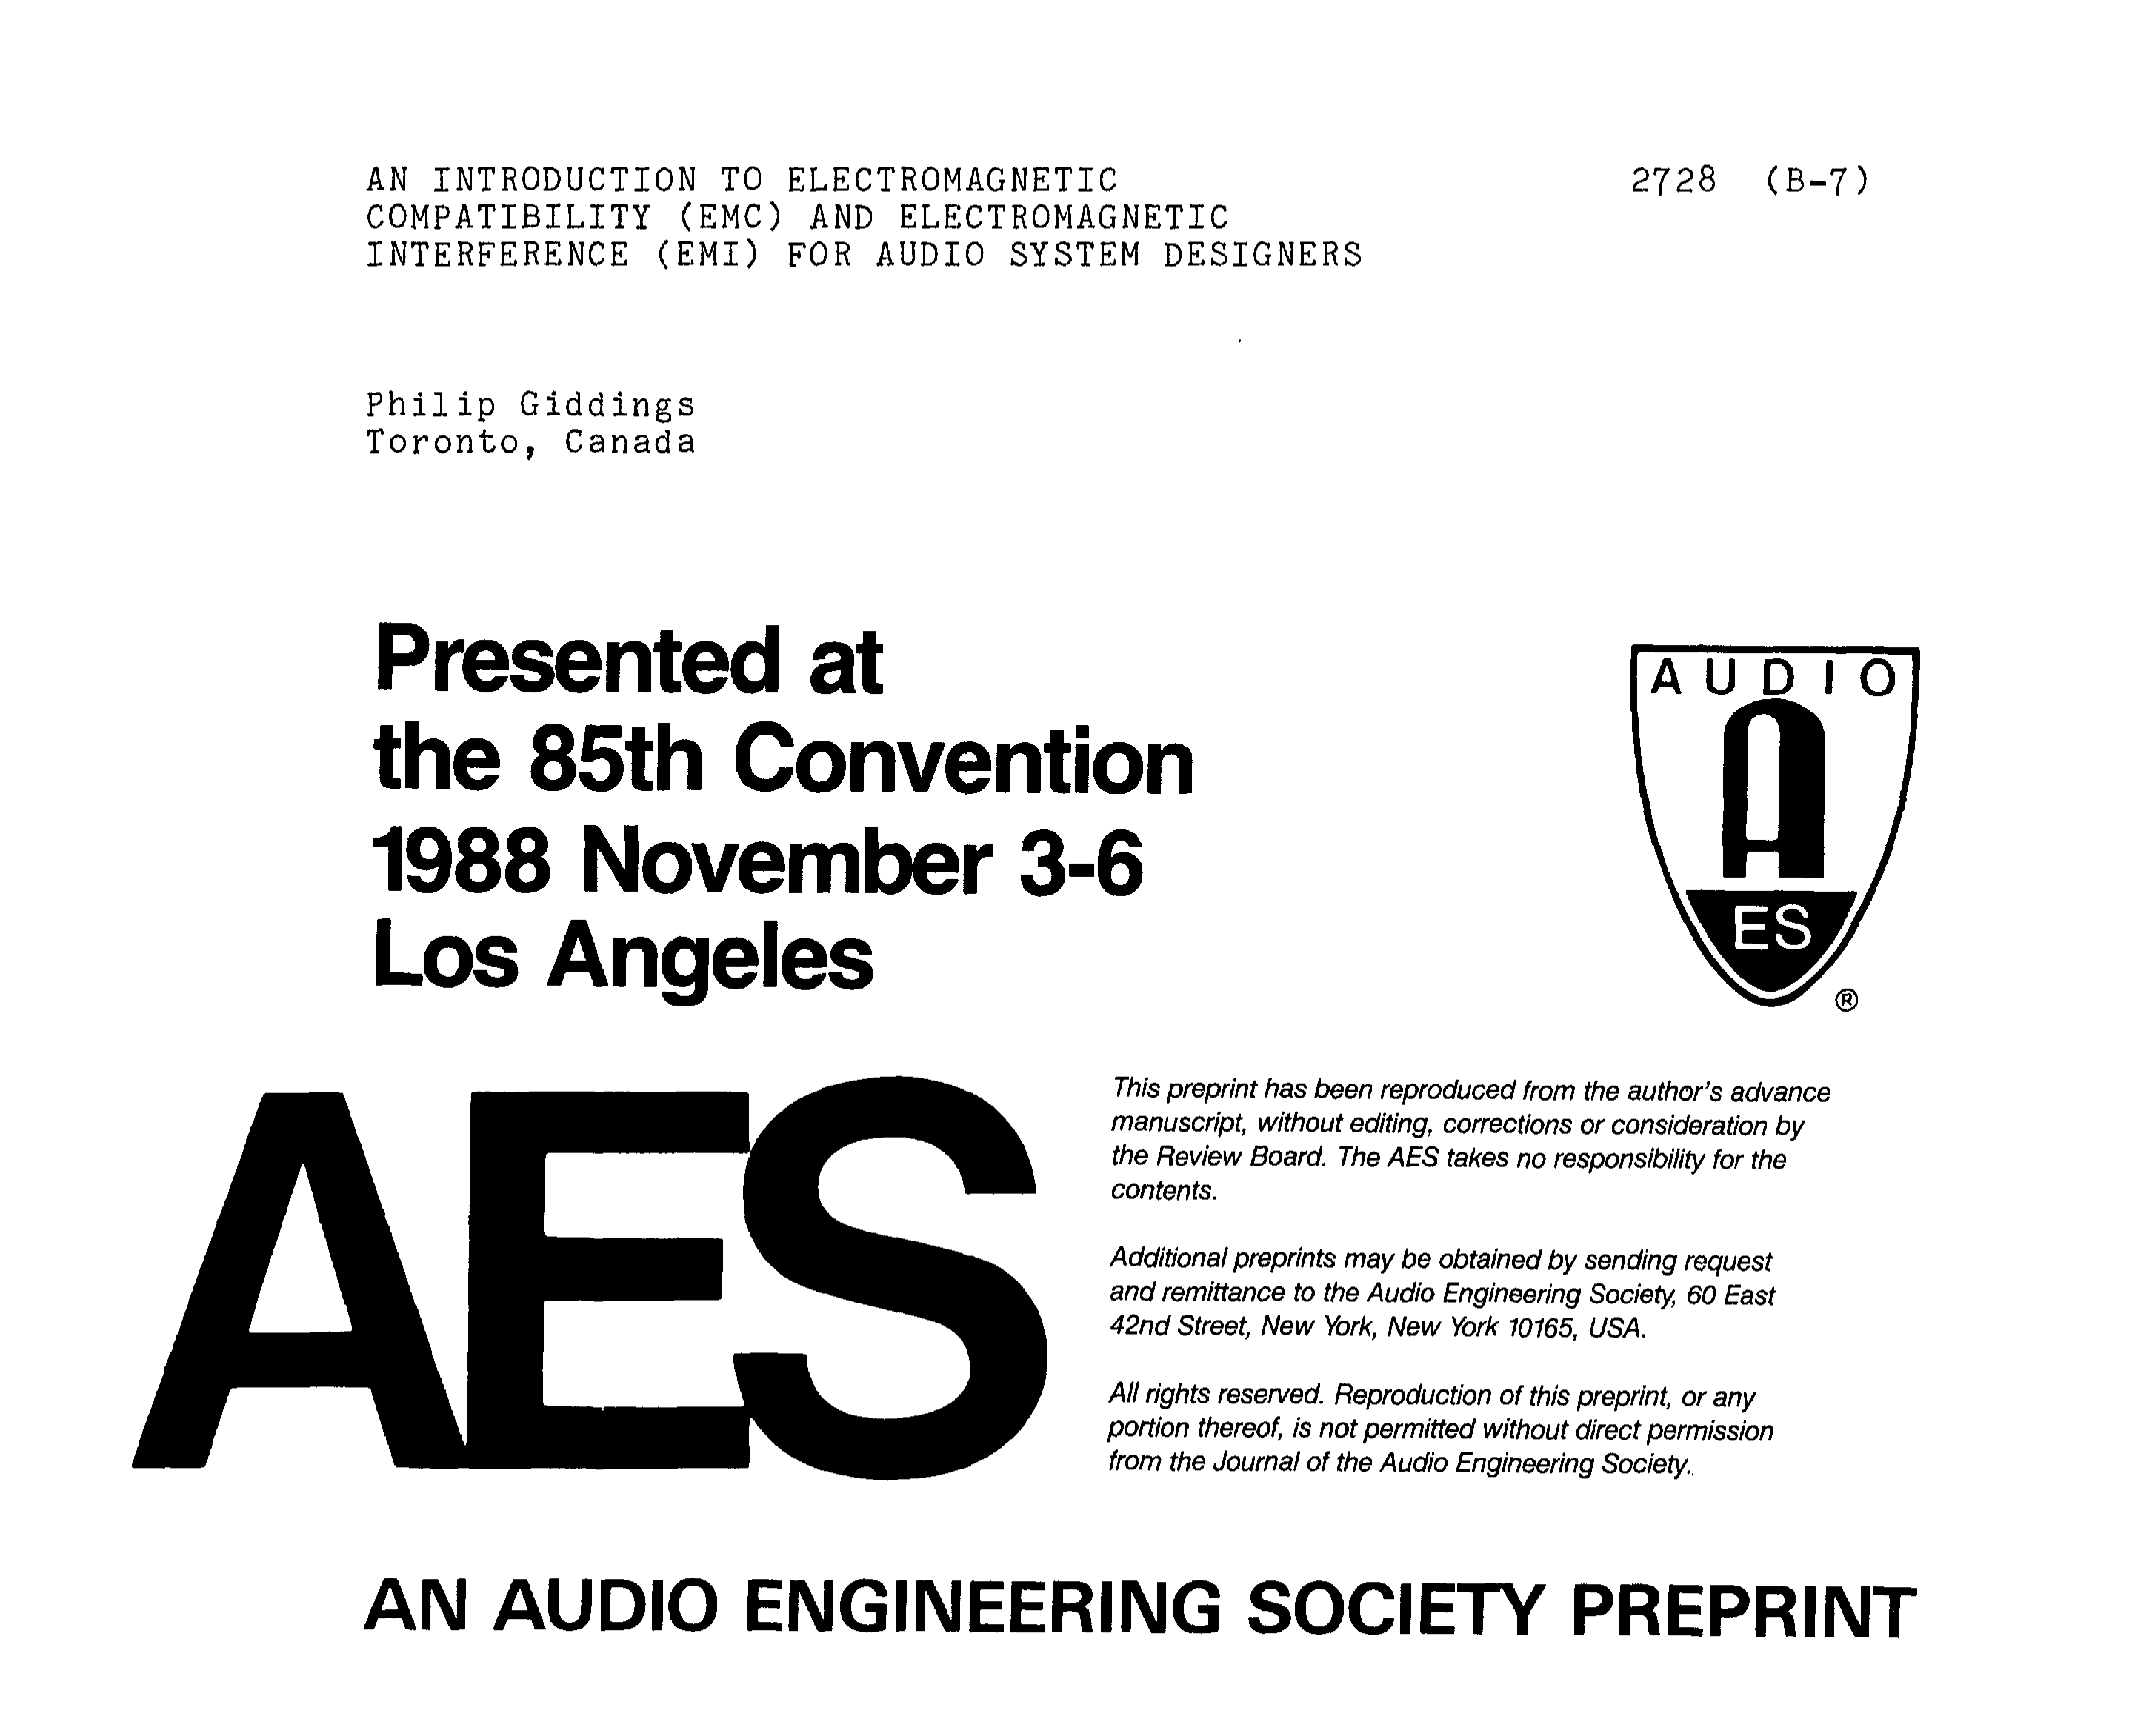 aes e library an introduction to electromagnetic compatibility rh aes org Study Materials study guide for electromagnetic compatibility engineering (scee press)